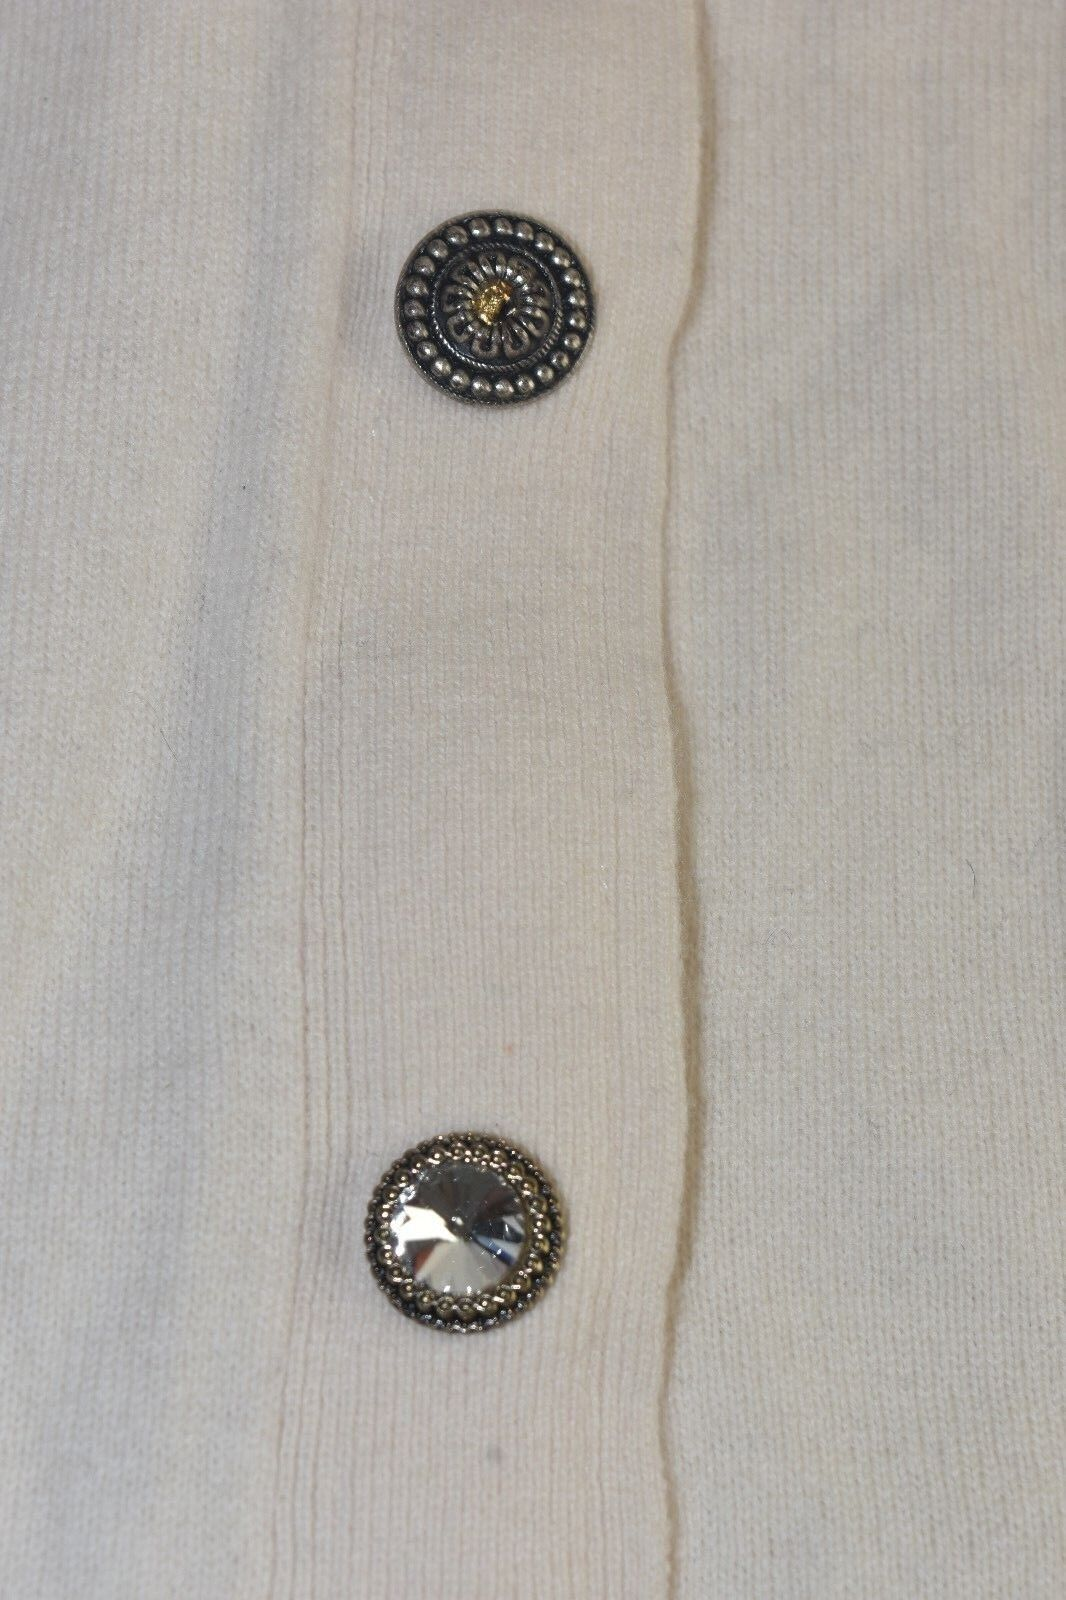 395 NEW TORY BURCH Merino Wool Jeweled Button Cardigan Cardigan Cardigan Sweater Satchet Ivory XS f3496d